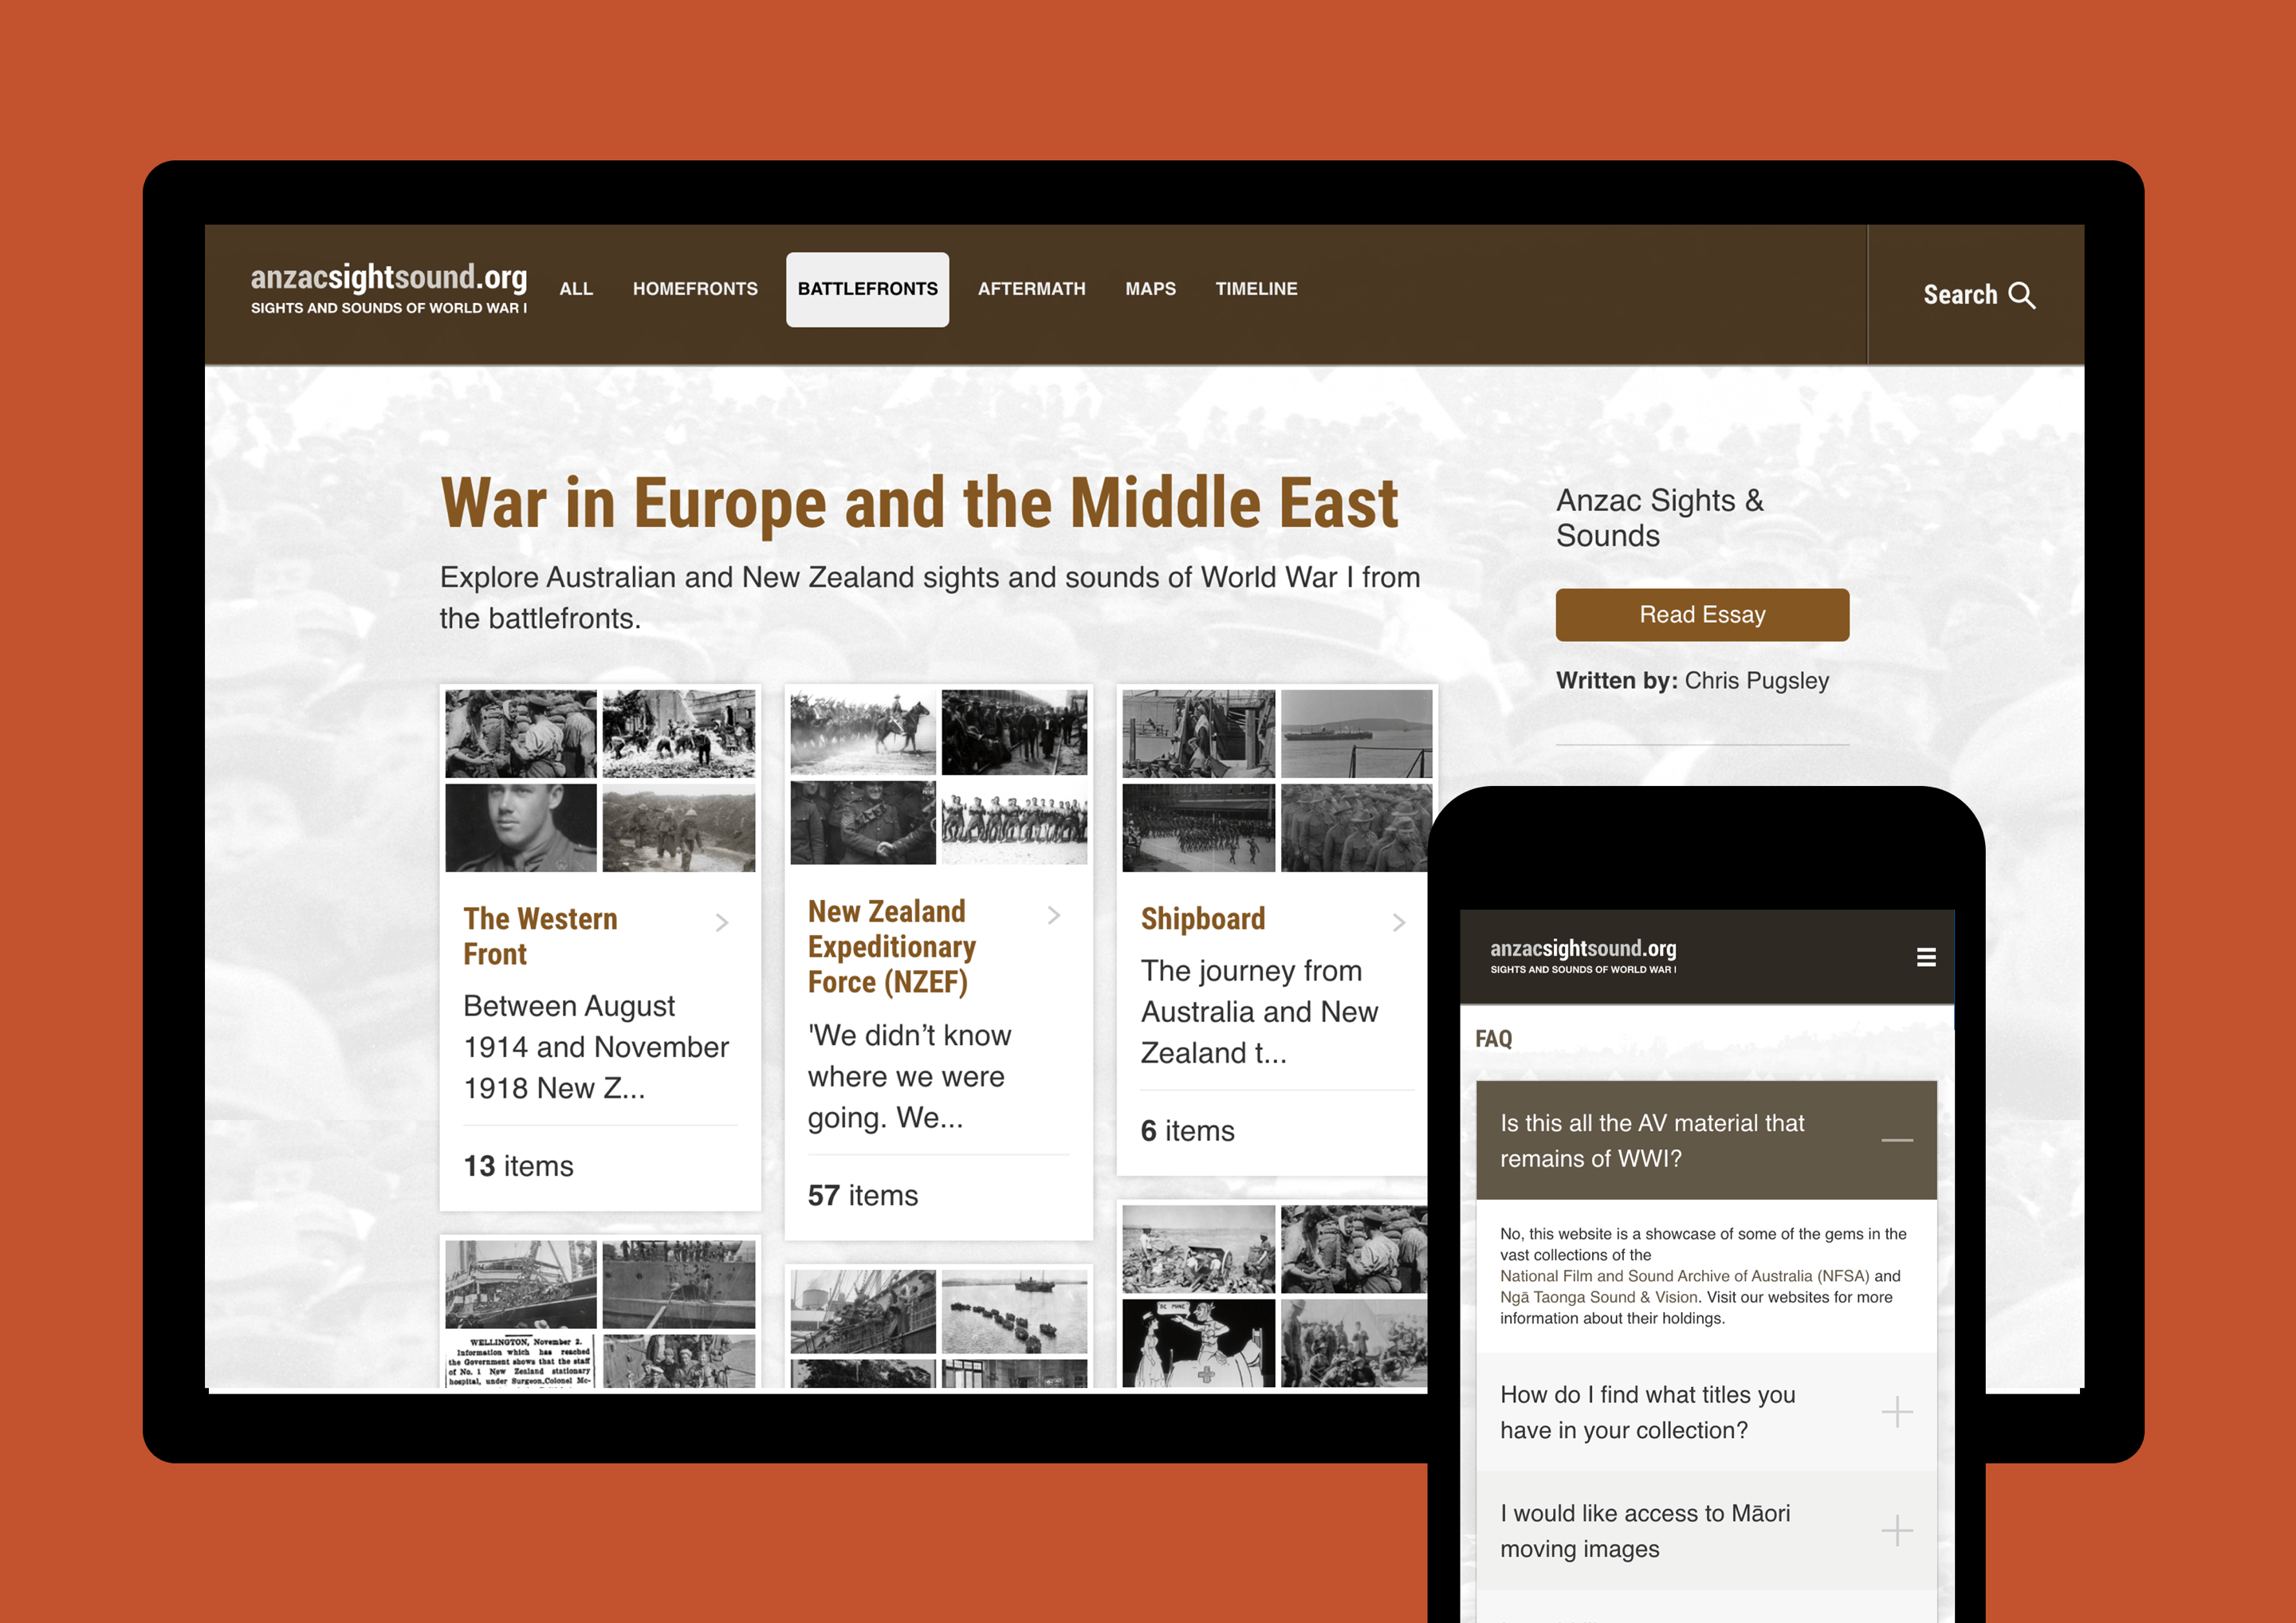 Mockup showing the results of our Anzac Sights and Sounds website design and development work, on desktop and mobile devices.